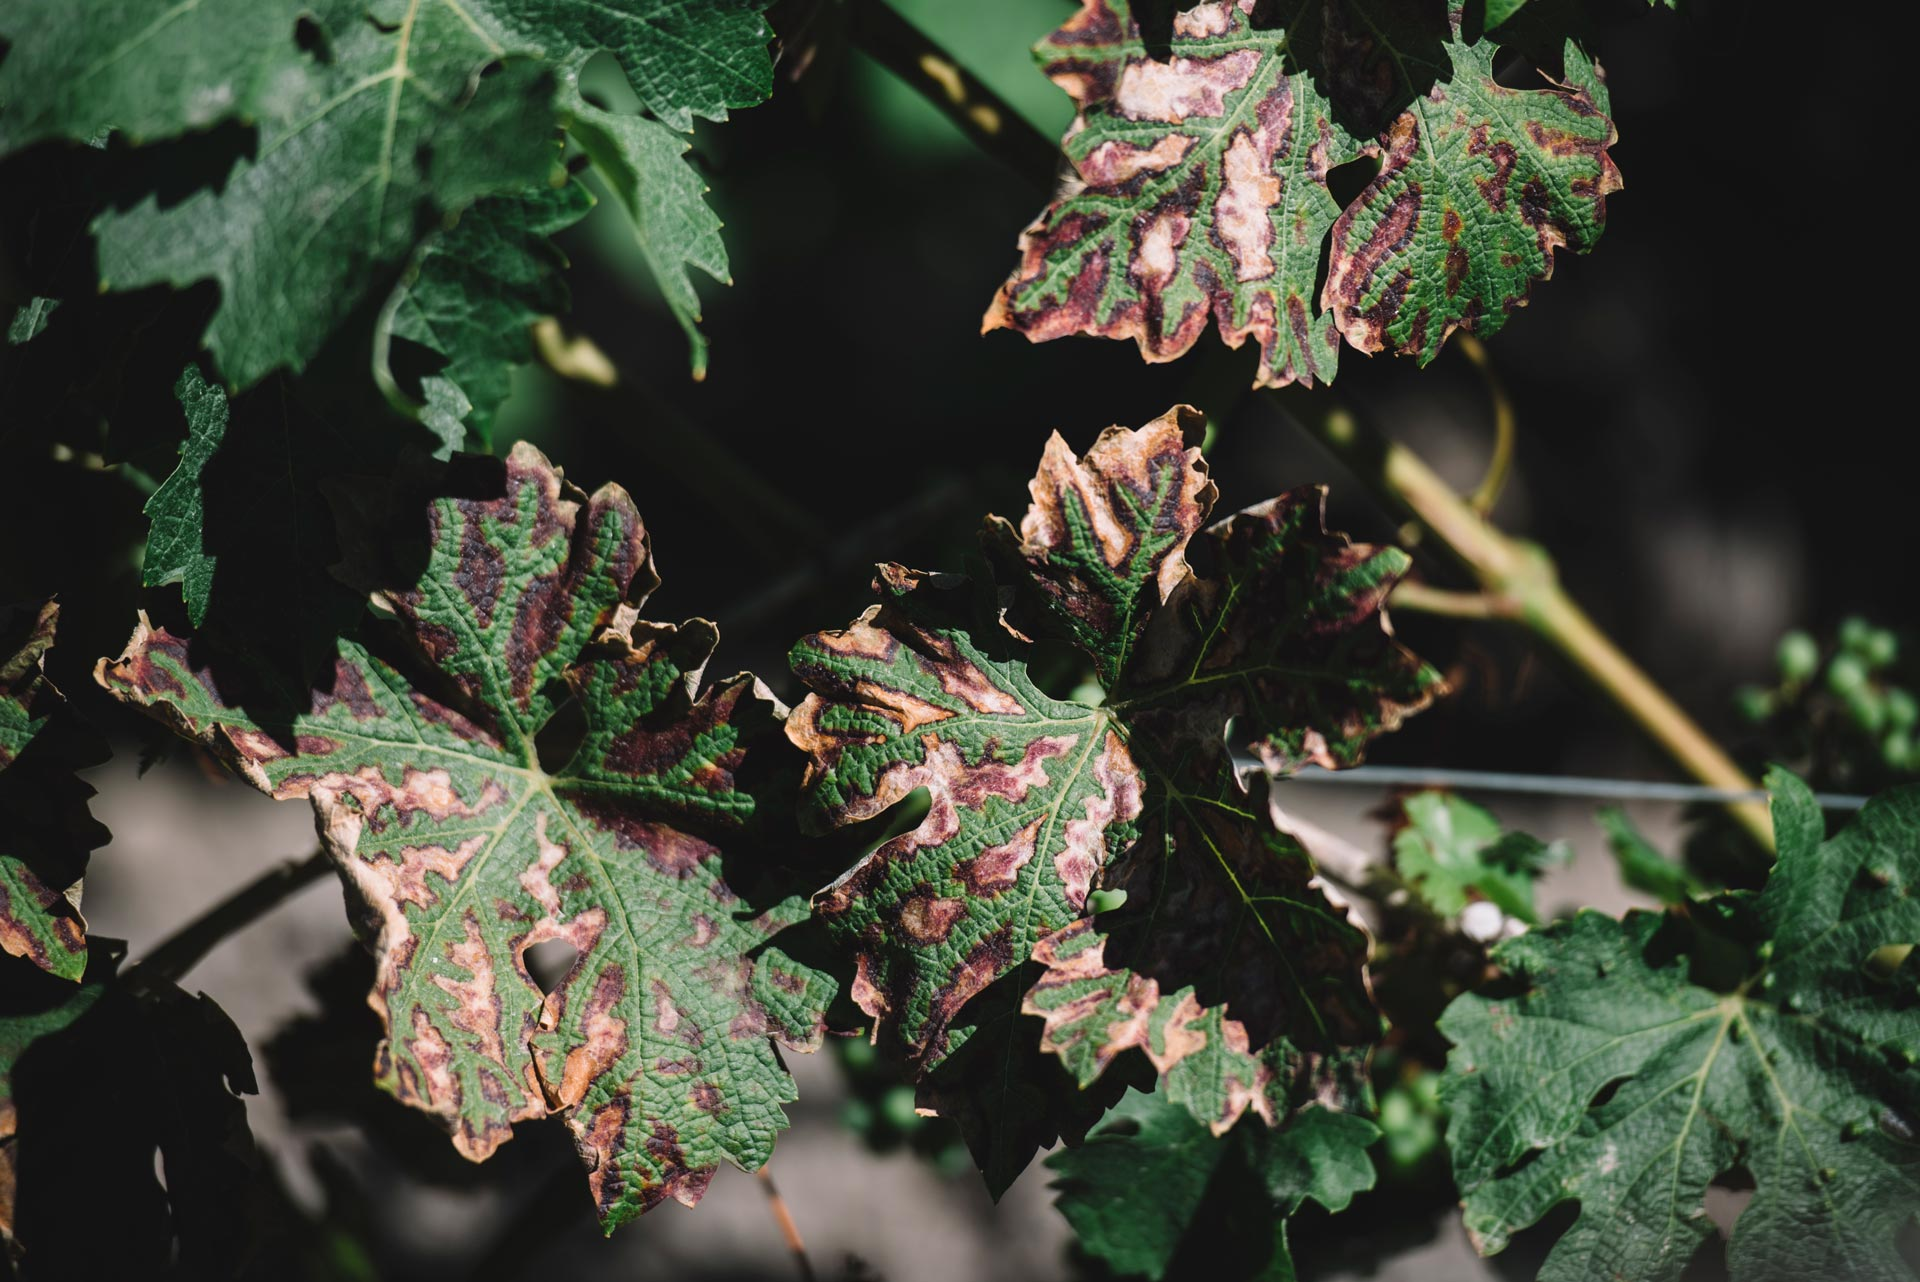 Guyot medoc, esca disease appearance | Pauillac vineyards | Bordeaux